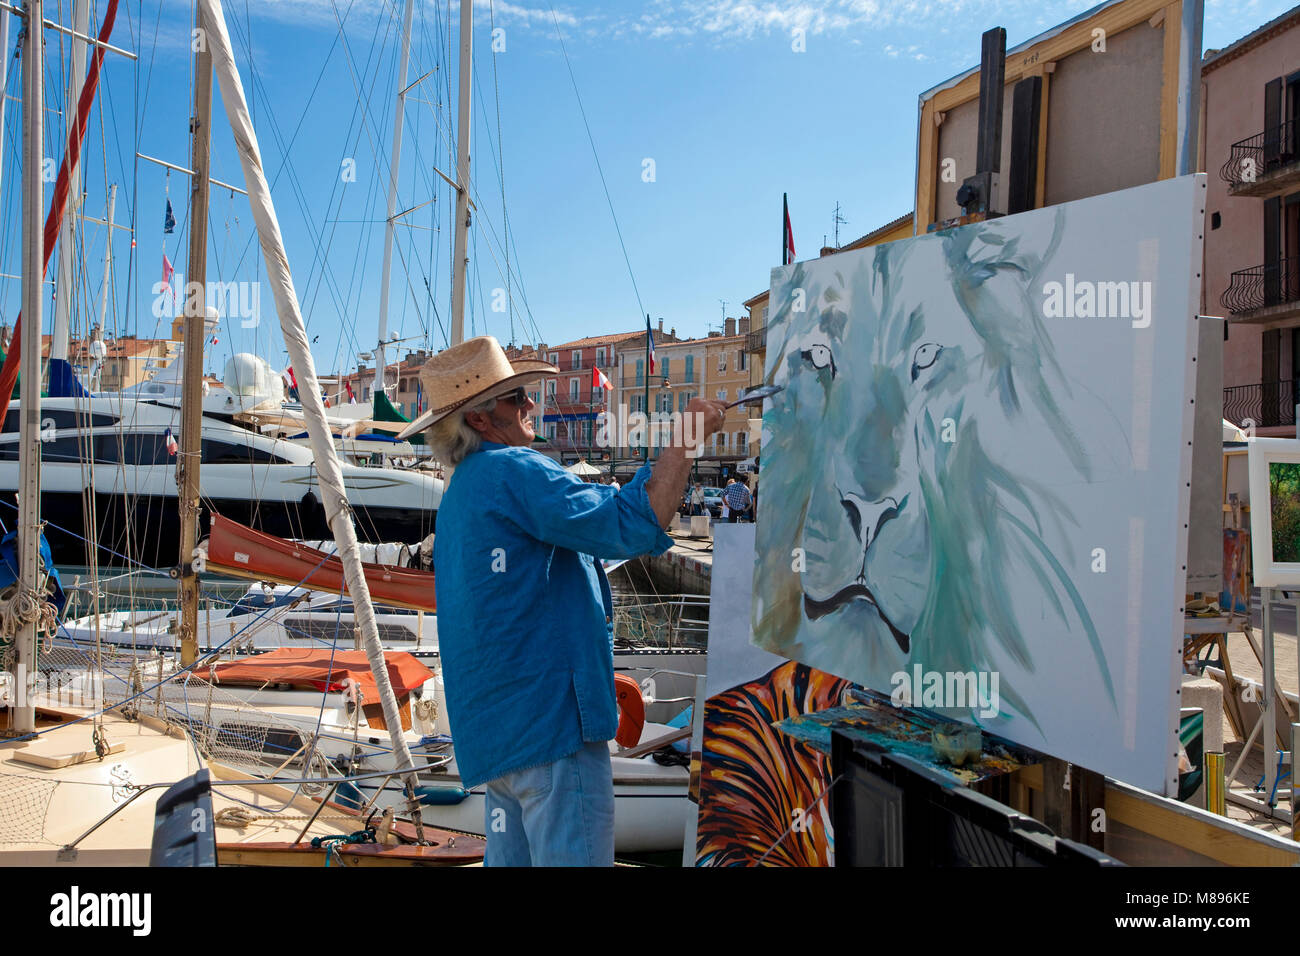 Painter at work, strolling promenade at harbour of Saint-Tropez, french riviera, South France, Cote d'Azur, - Stock Image